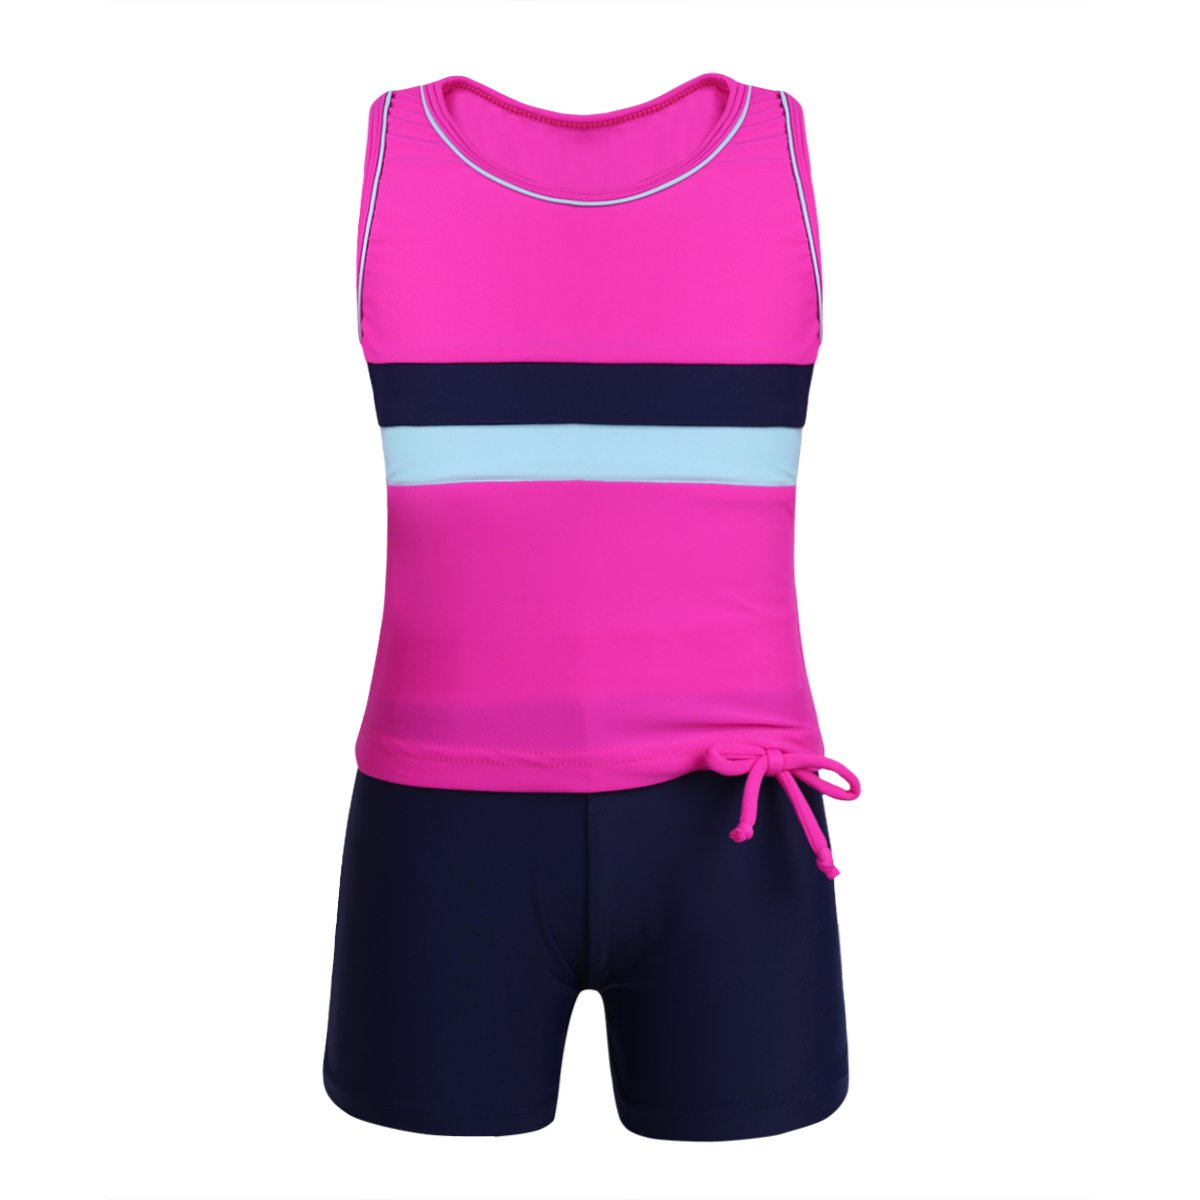 YONGHS Kids Girls Sleeveless Race Back Tops with Bottoms Set Two Piece Tankini Swimwear Bathing Suit Activewear